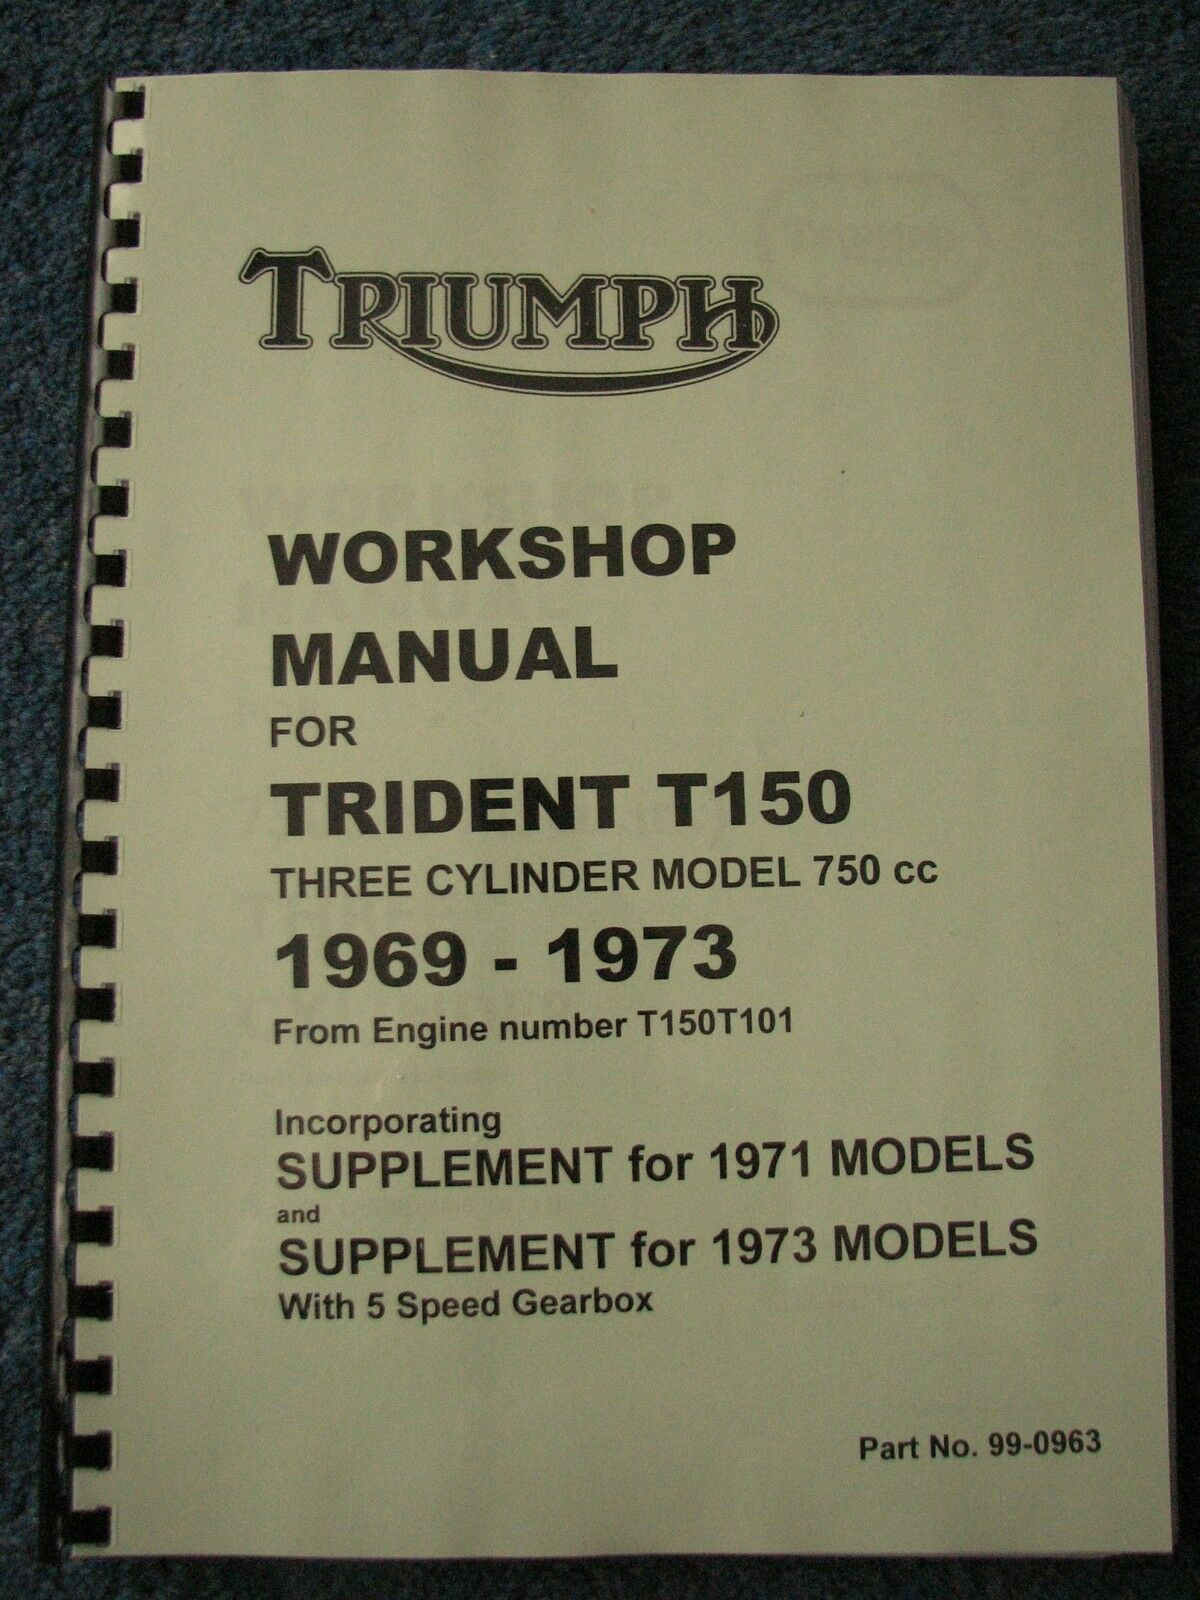 Triumph Trident T150 Workshop Manual 99 0963 All Models From 1969 73 1974 Electrical Wiring 1 Of 1only 2 Available